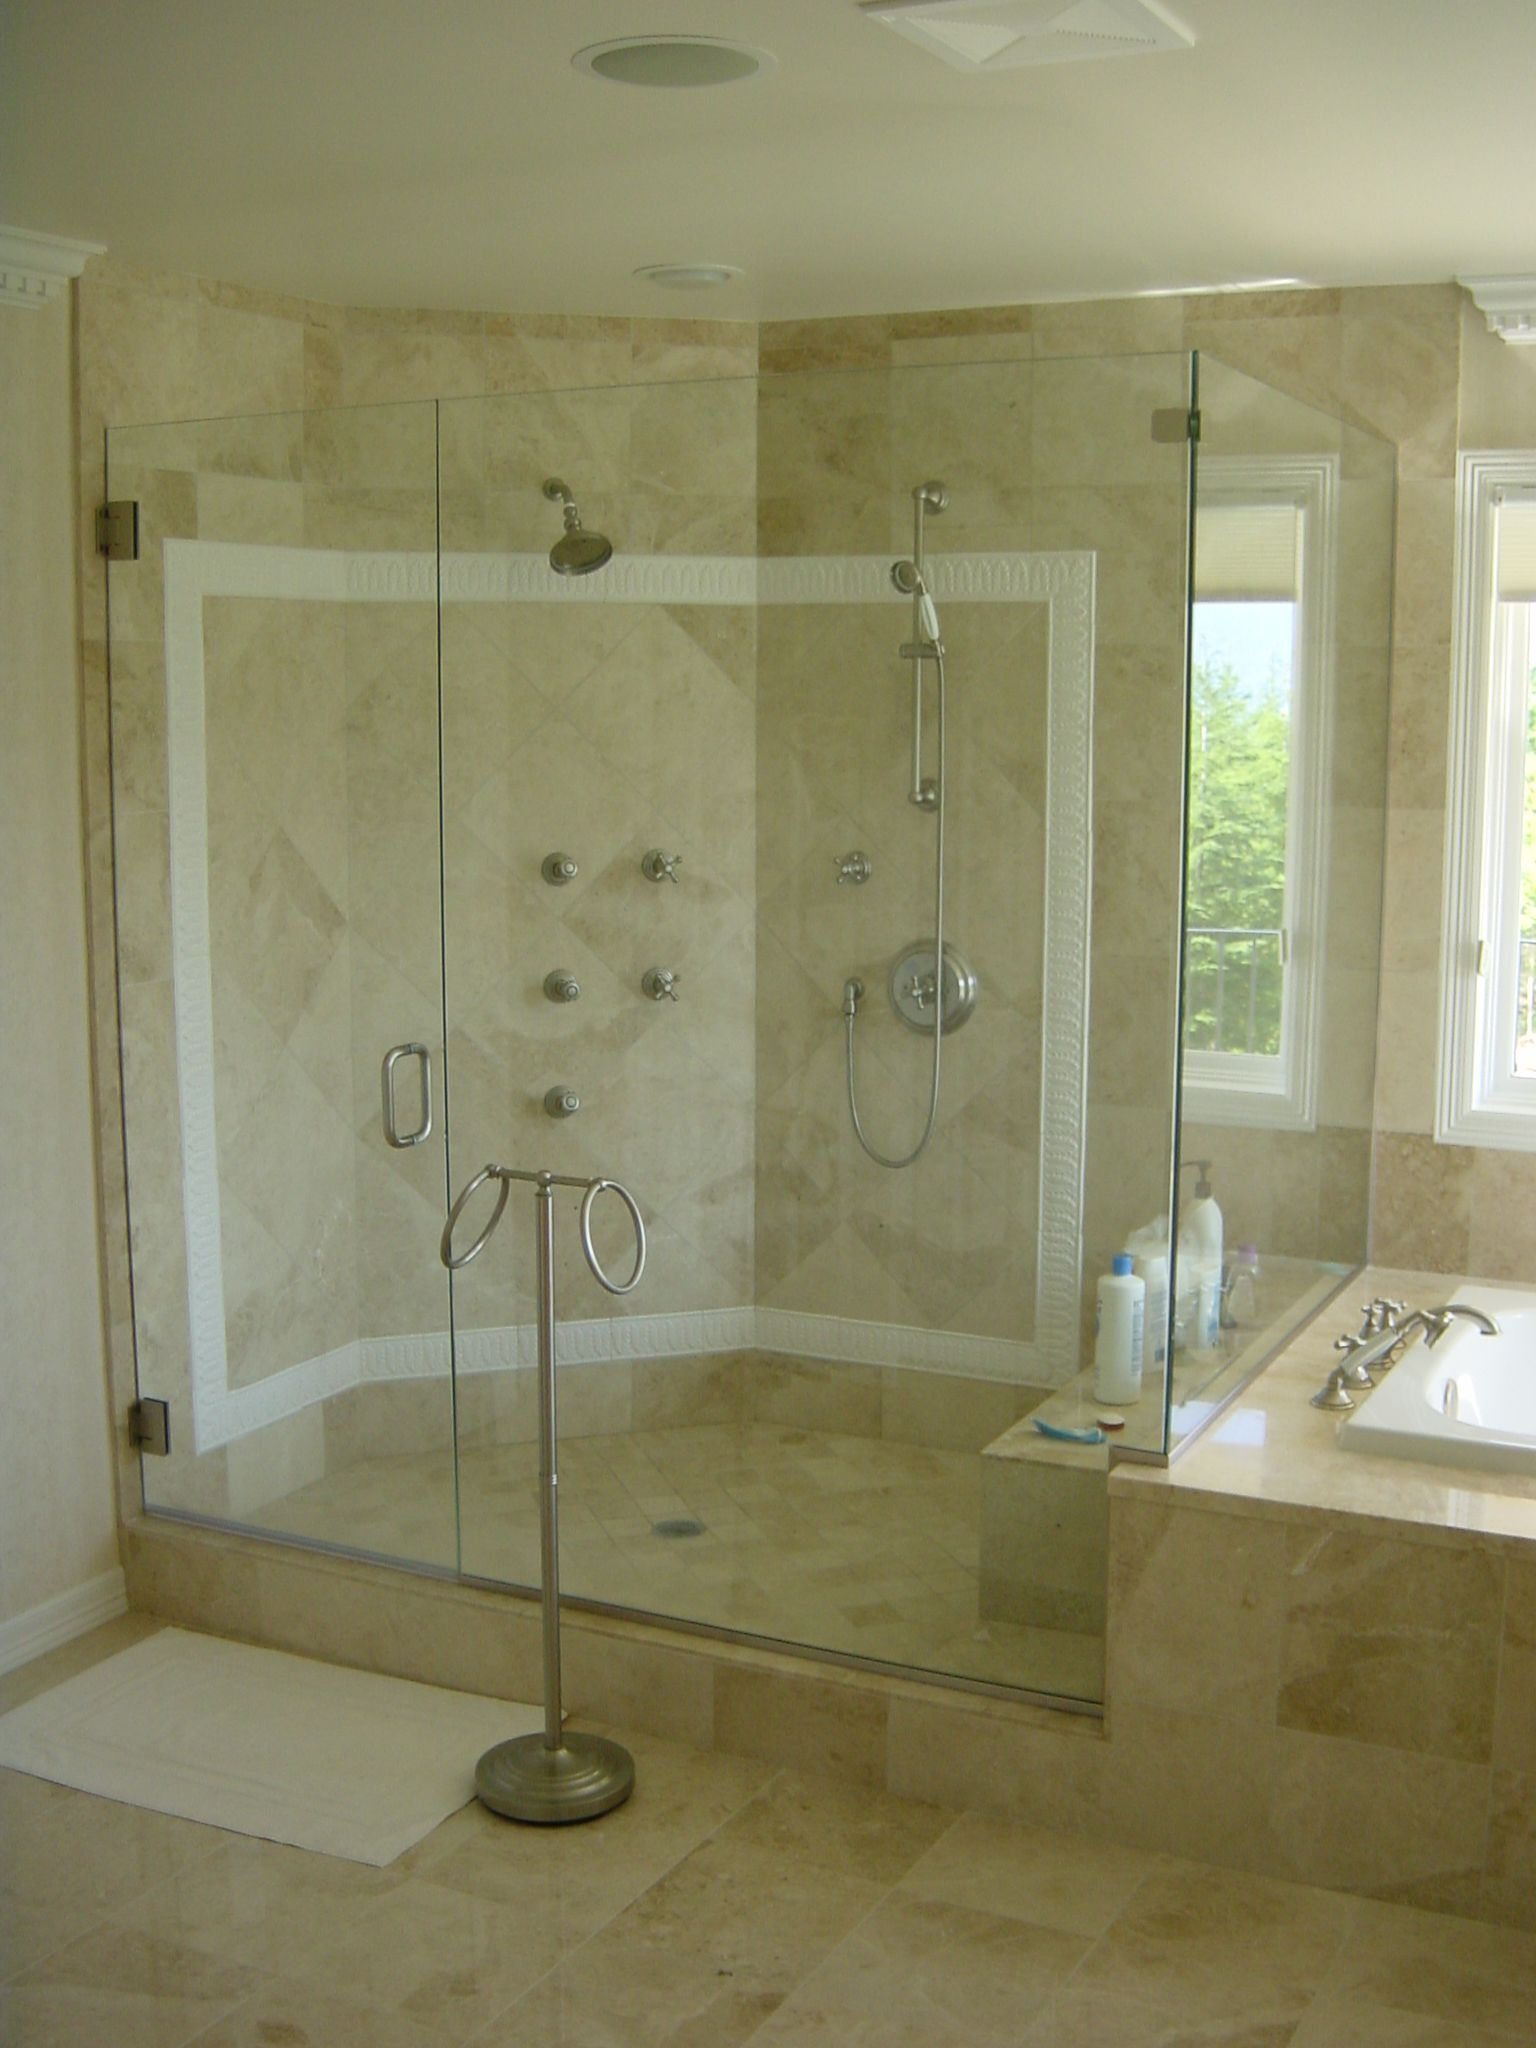 Frameless Glass Hinged Corner Shower Door & Shower Enclosure ...